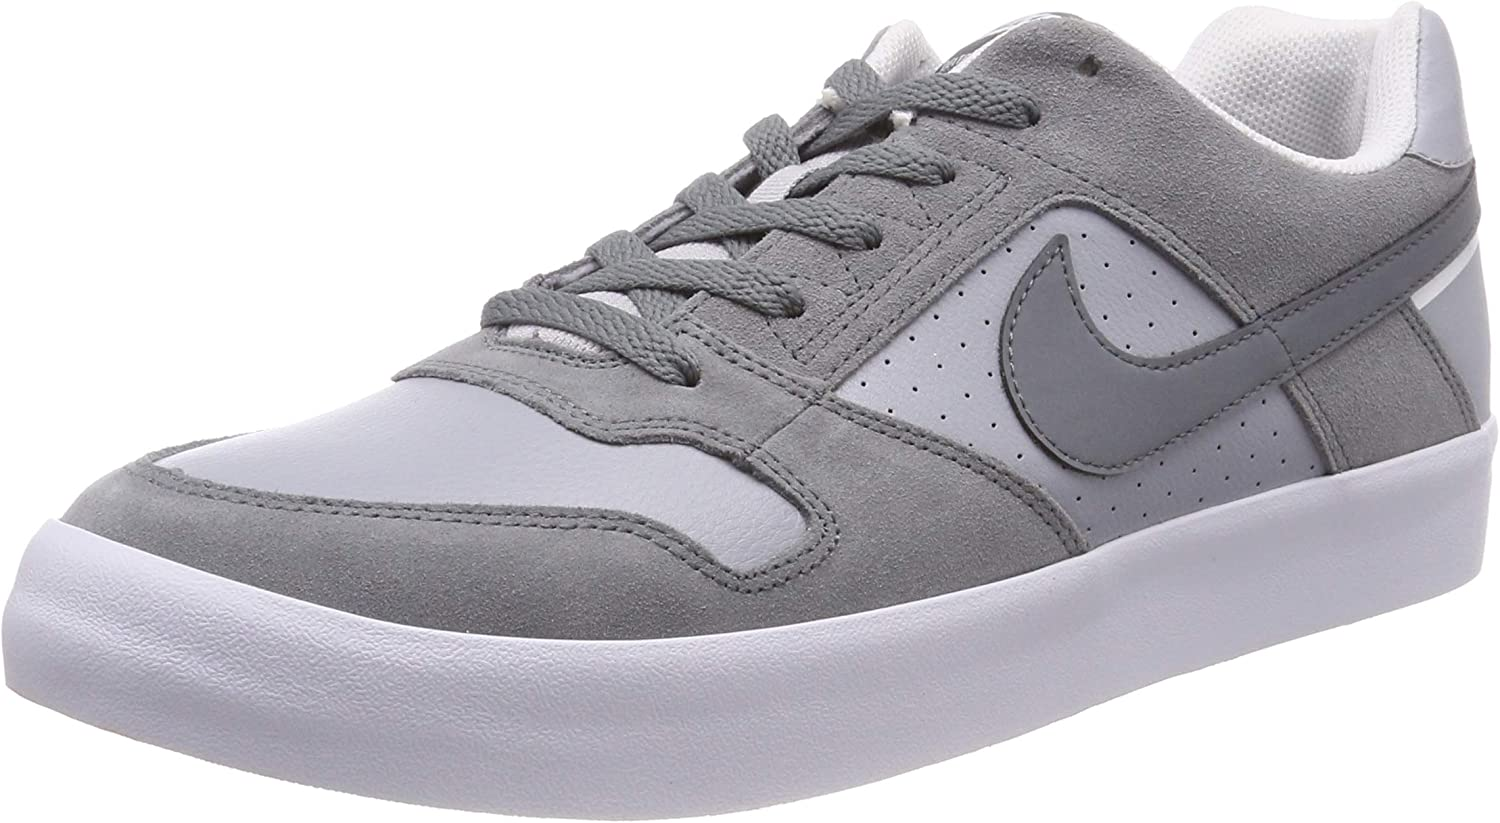 Despertar Latón Organo  Amazon.com: Nike Mens SB Delta Force Vulc Cool Grey Wolf Grey White Size  14: Sports & Outdoors